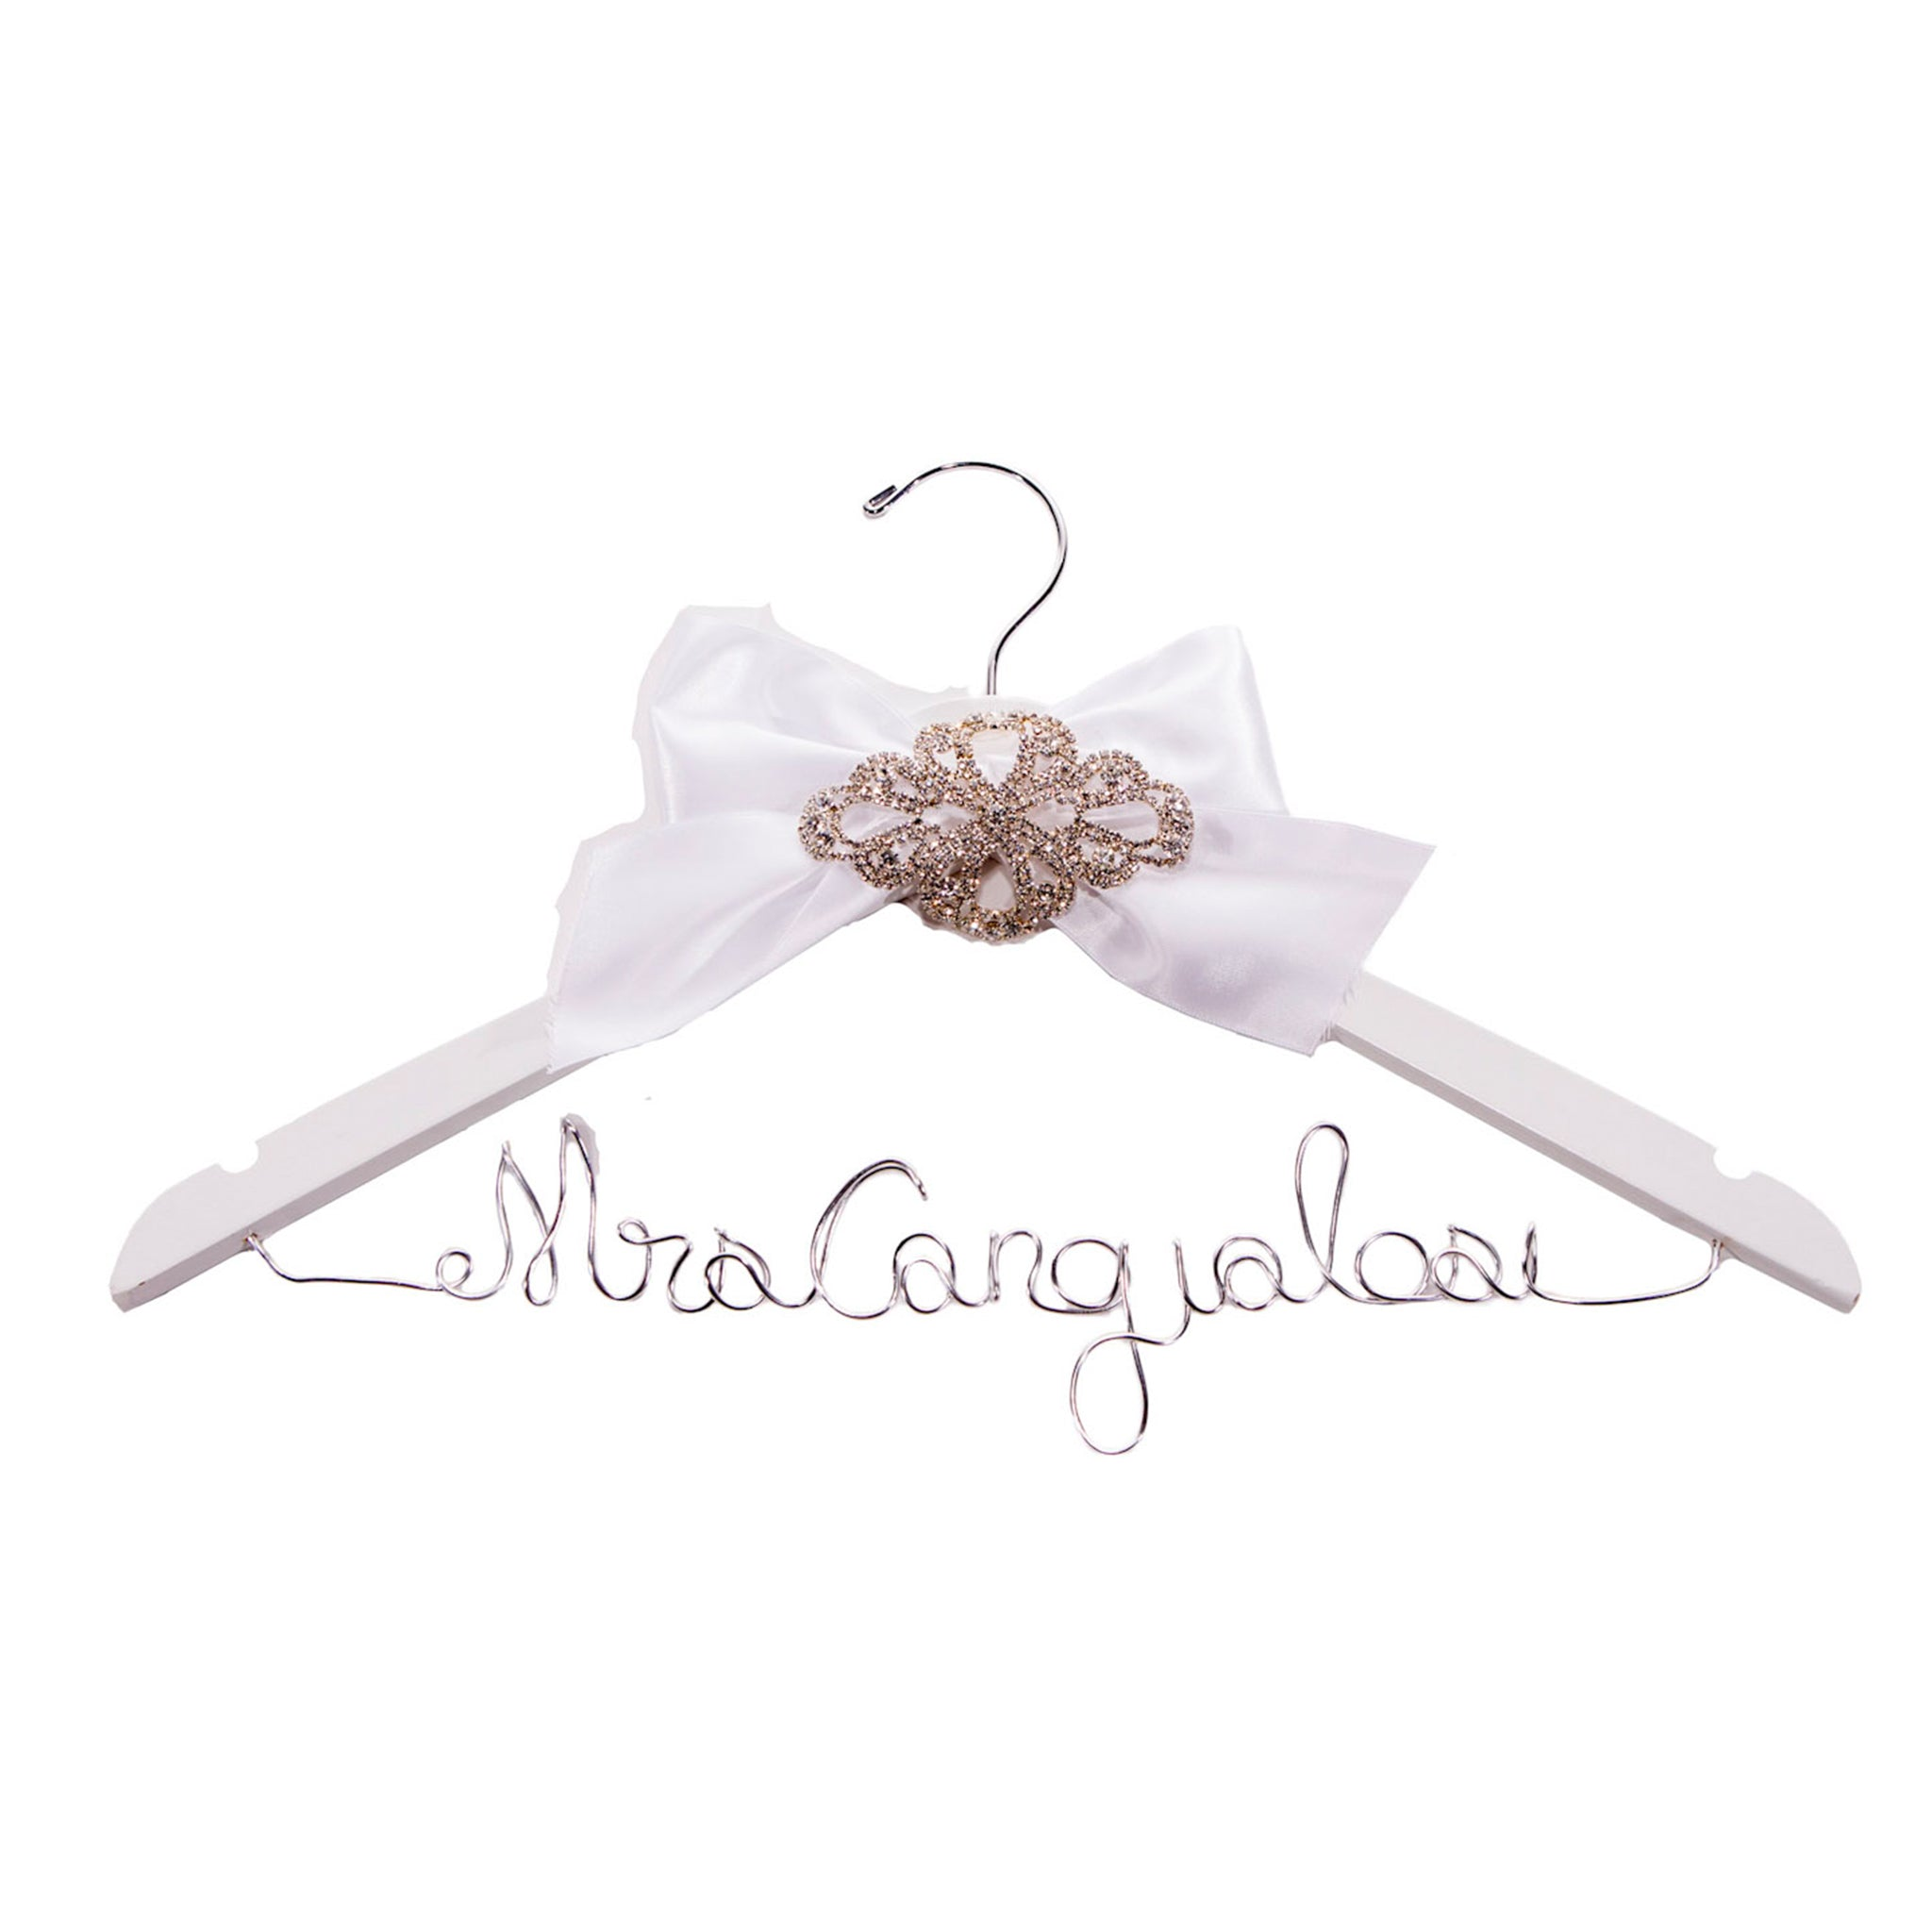 Personalized Wire Hanger - TIFFANY GONZALEZ BRIDAL REGISTRY - LE EL New York